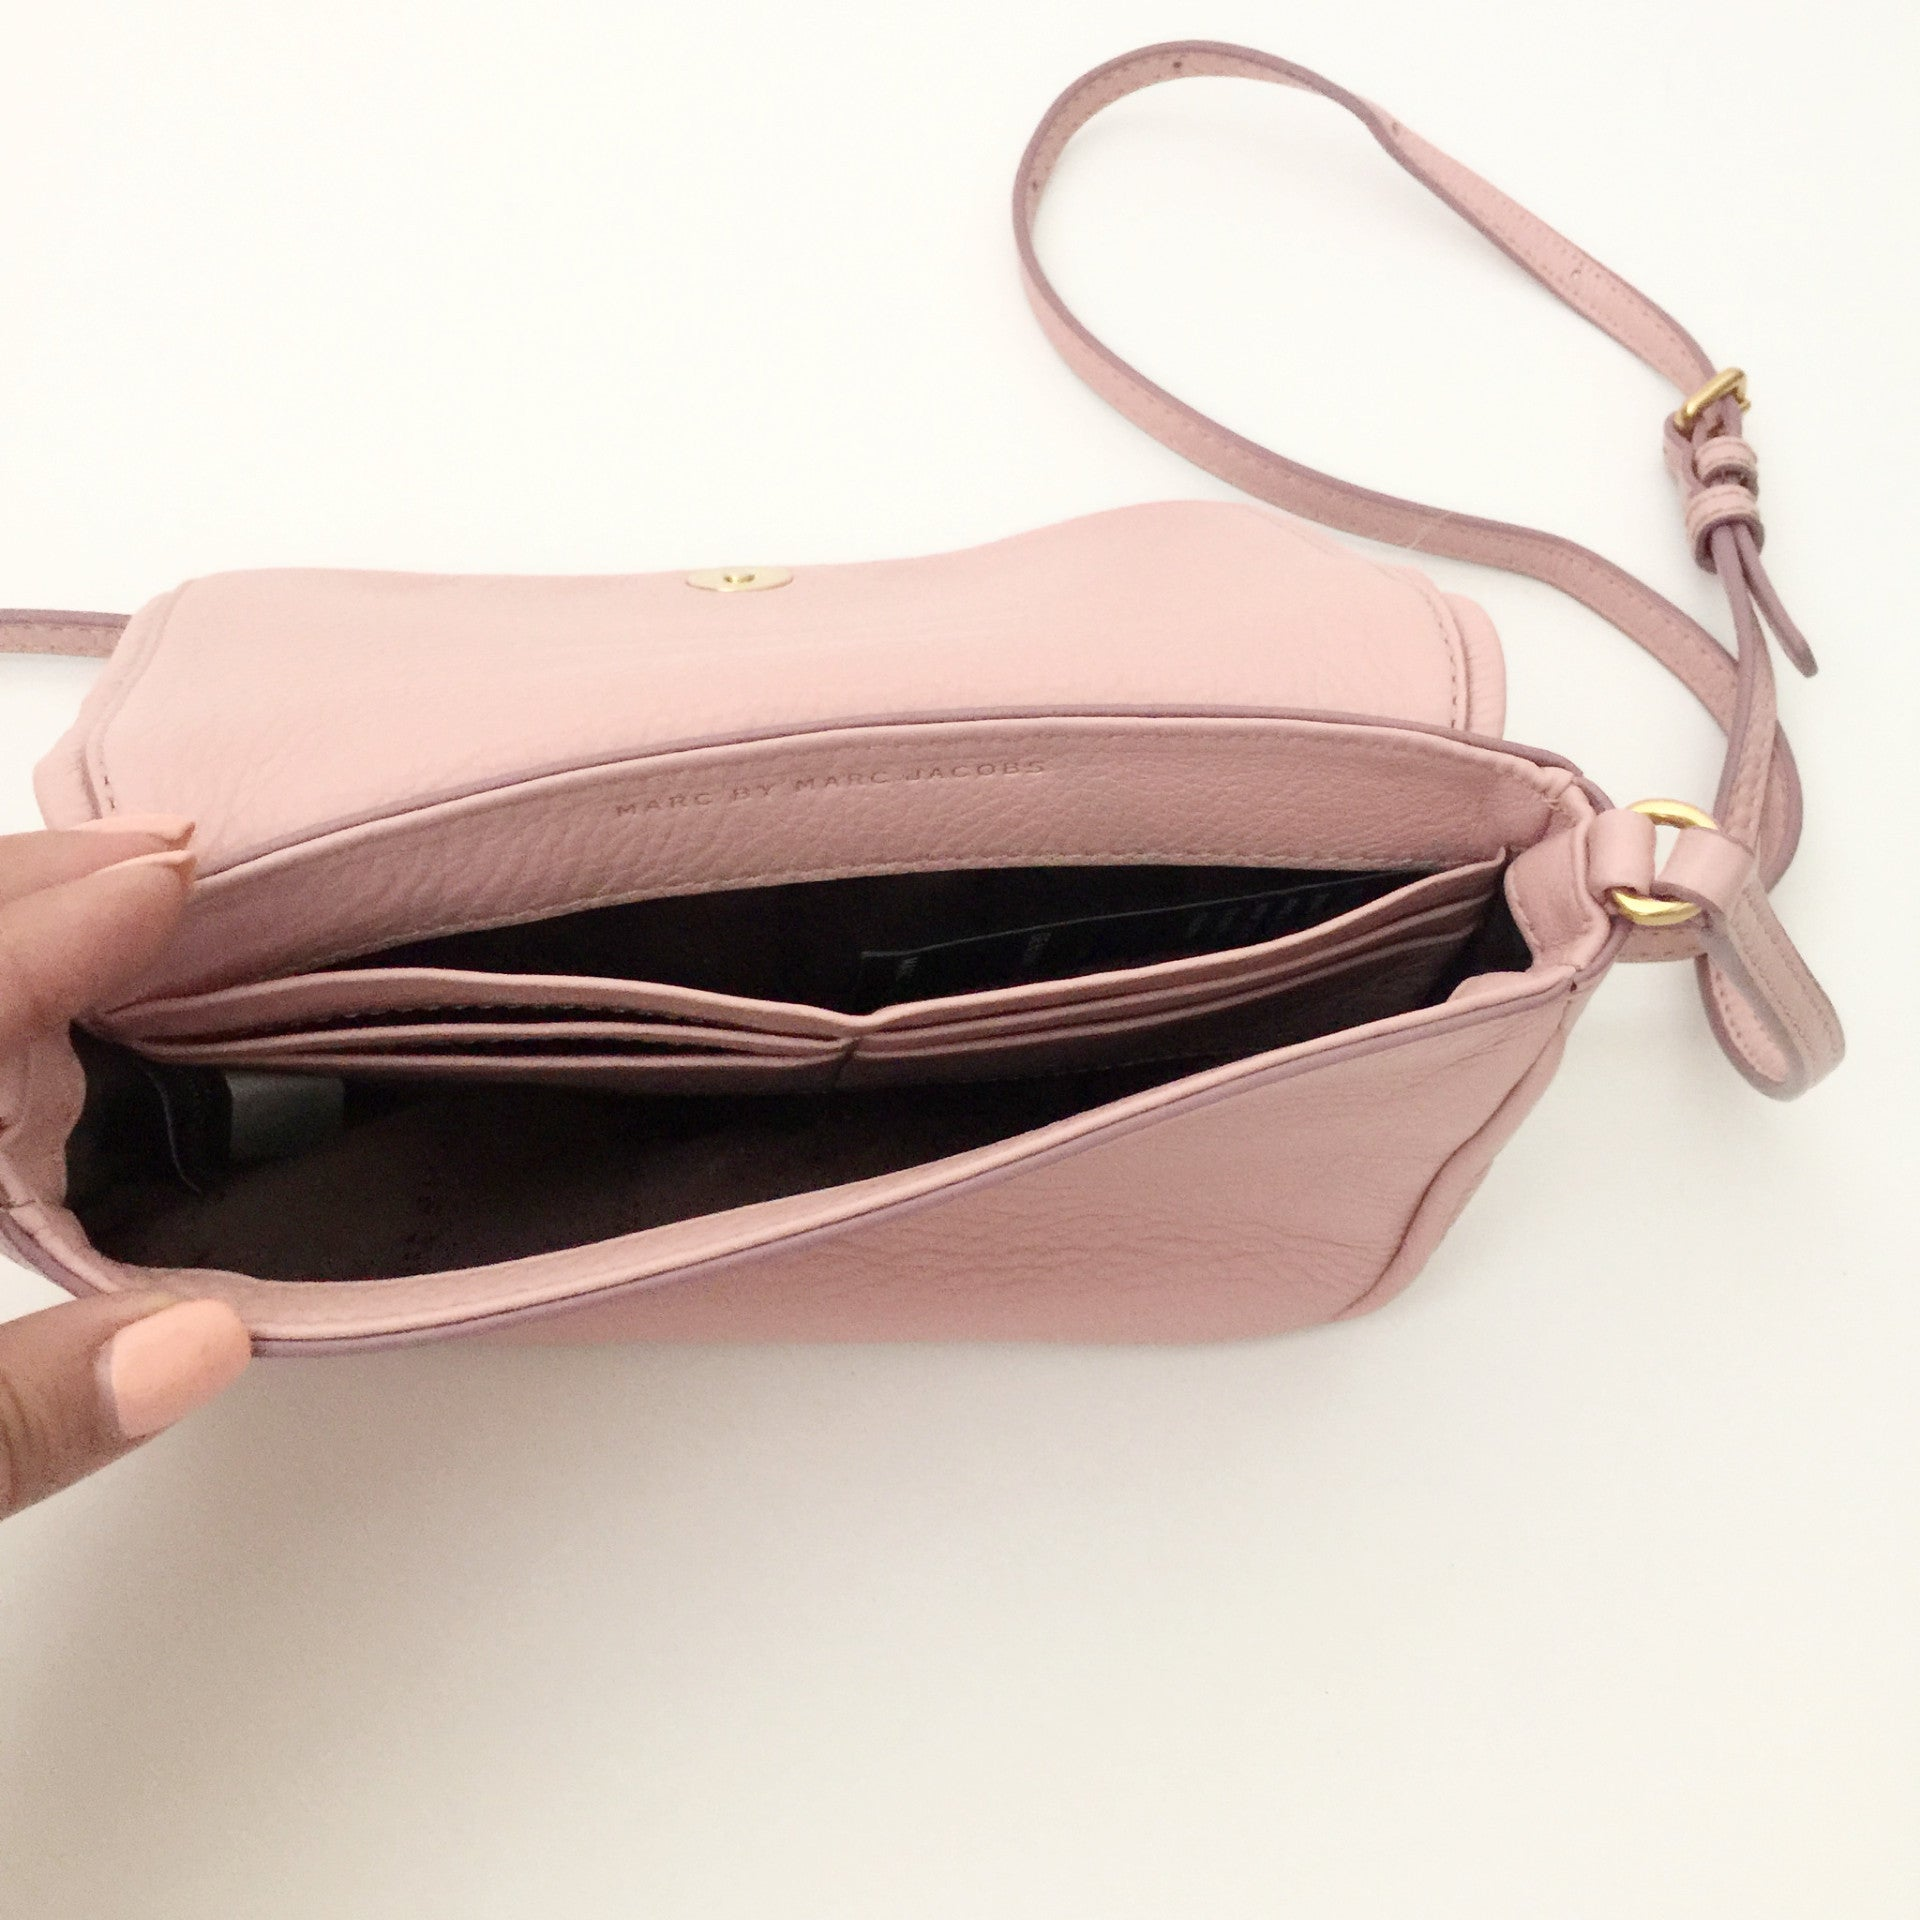 Authentic Marc by Marc Jacobs Small Baby Pink Crossbody